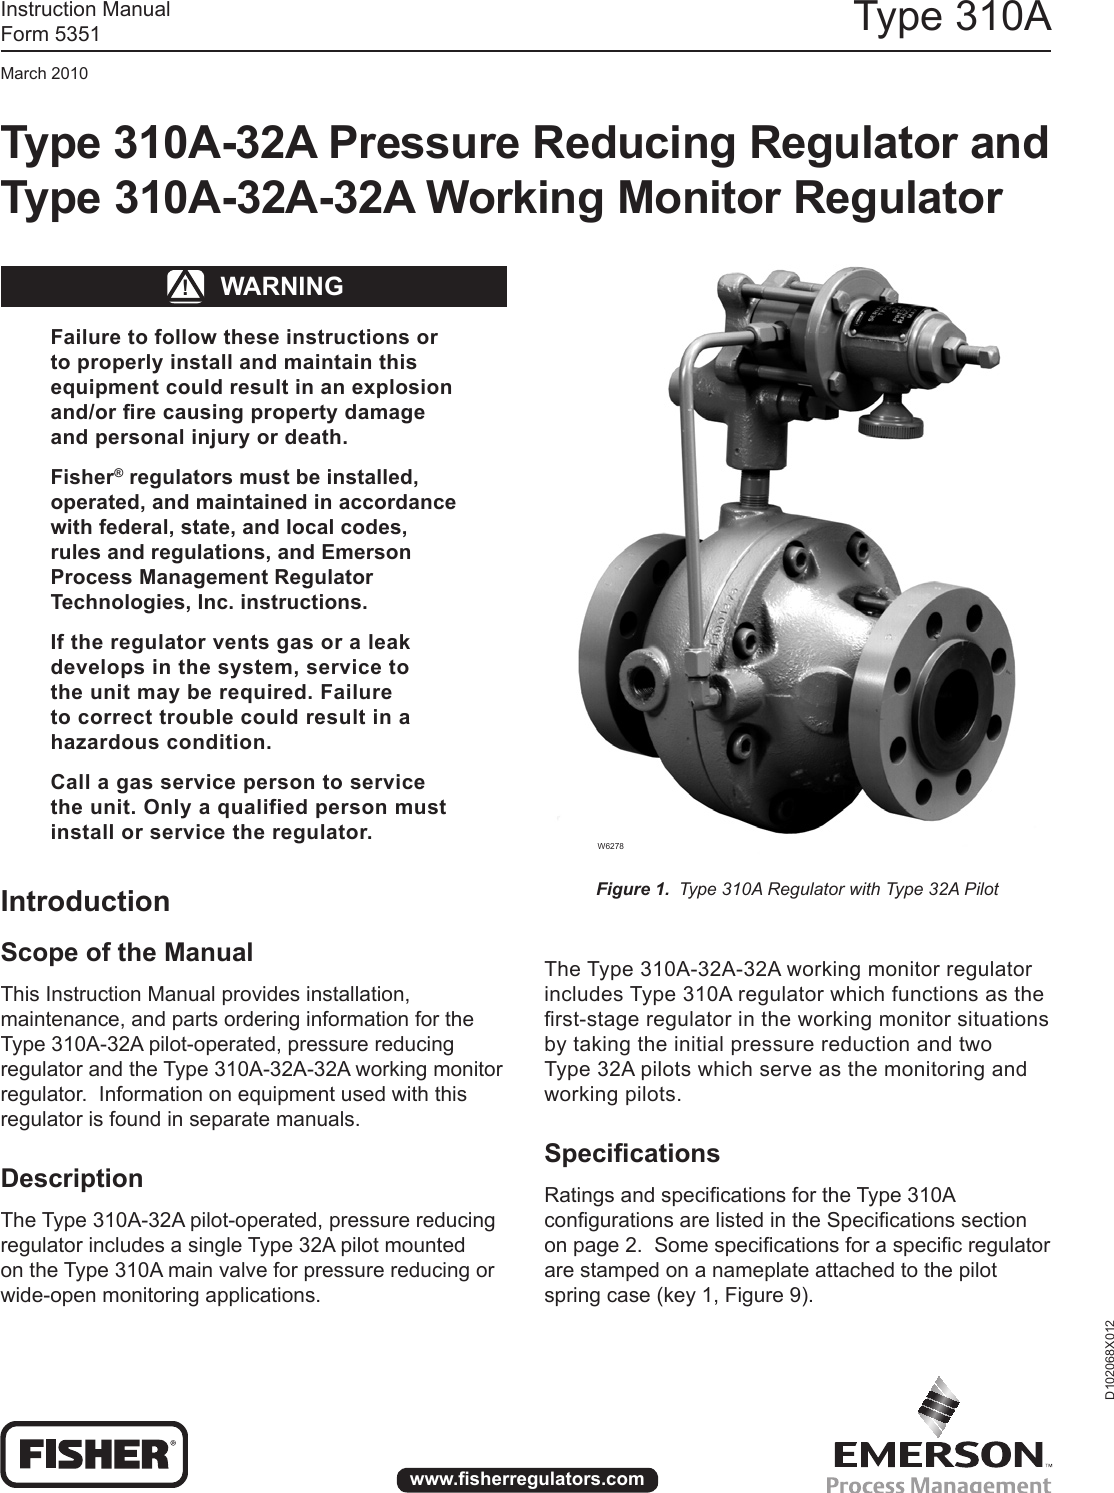 Emerson 310A Pressure Reducing Regulator Instruction Manual